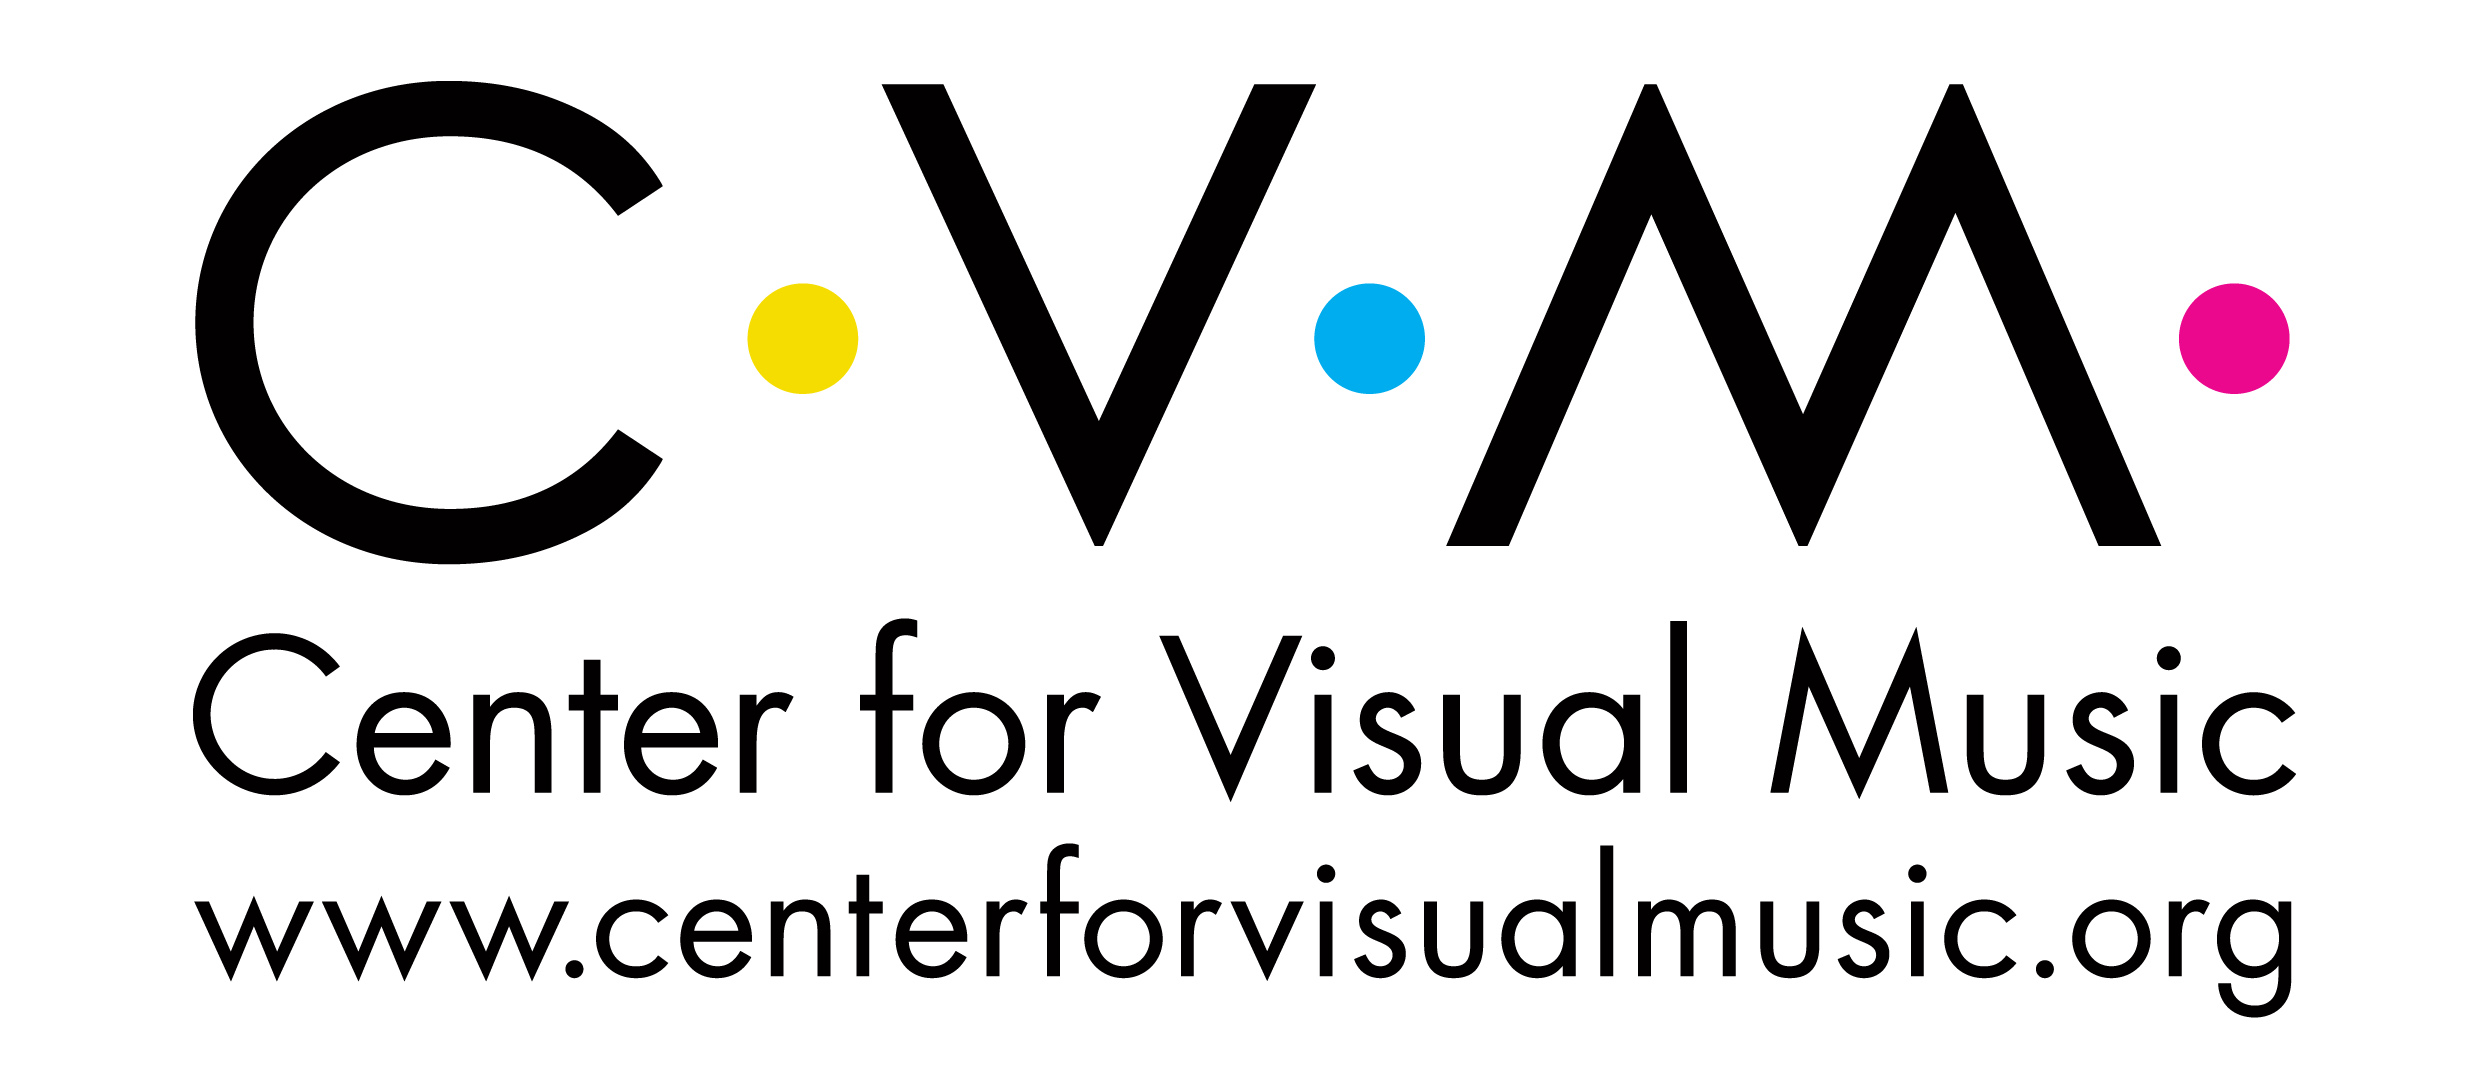 Center for Visual Music